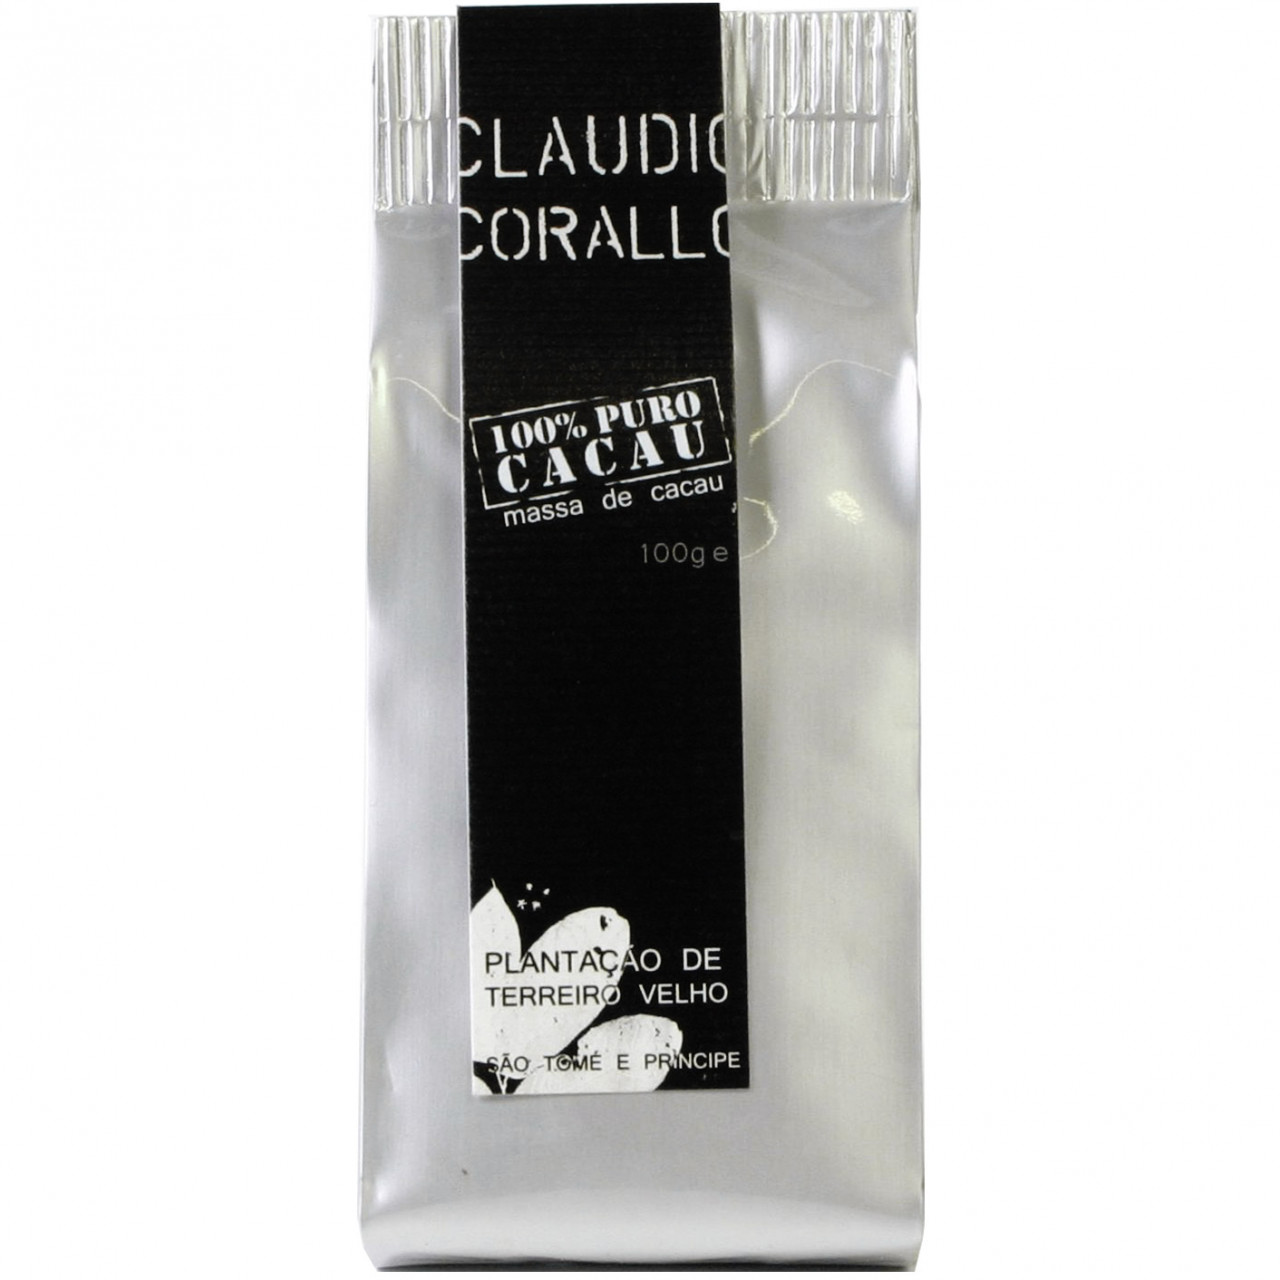 Claudio Corallo Sao Tomé dunkle Schokolade 100% dark chocolate chocolat noir                                                                                                                             - Bar of Chocolate, sugar free chocolate, Sao Tomé, Sao Tomé Chocolate, plain pure chocolate without ingredients - Chocolats-De-Luxe